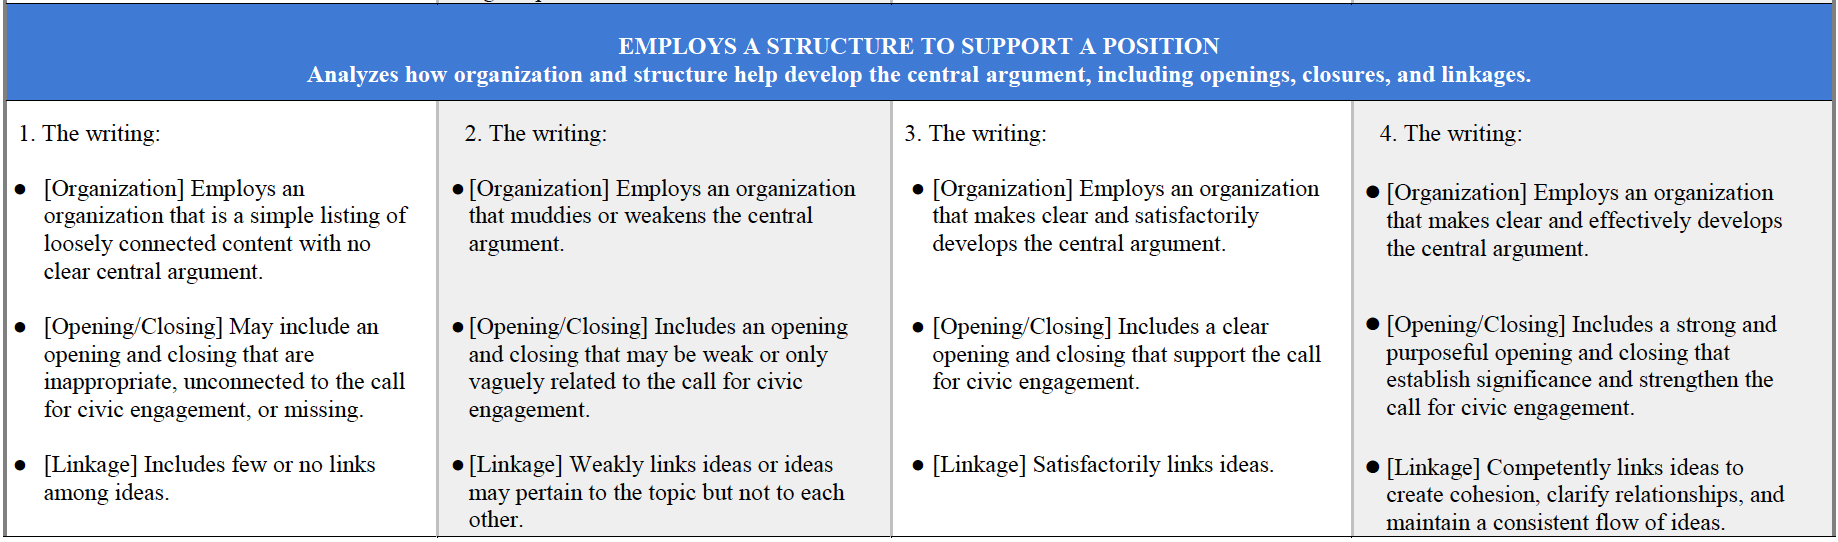 Employs a Structure Snapshot